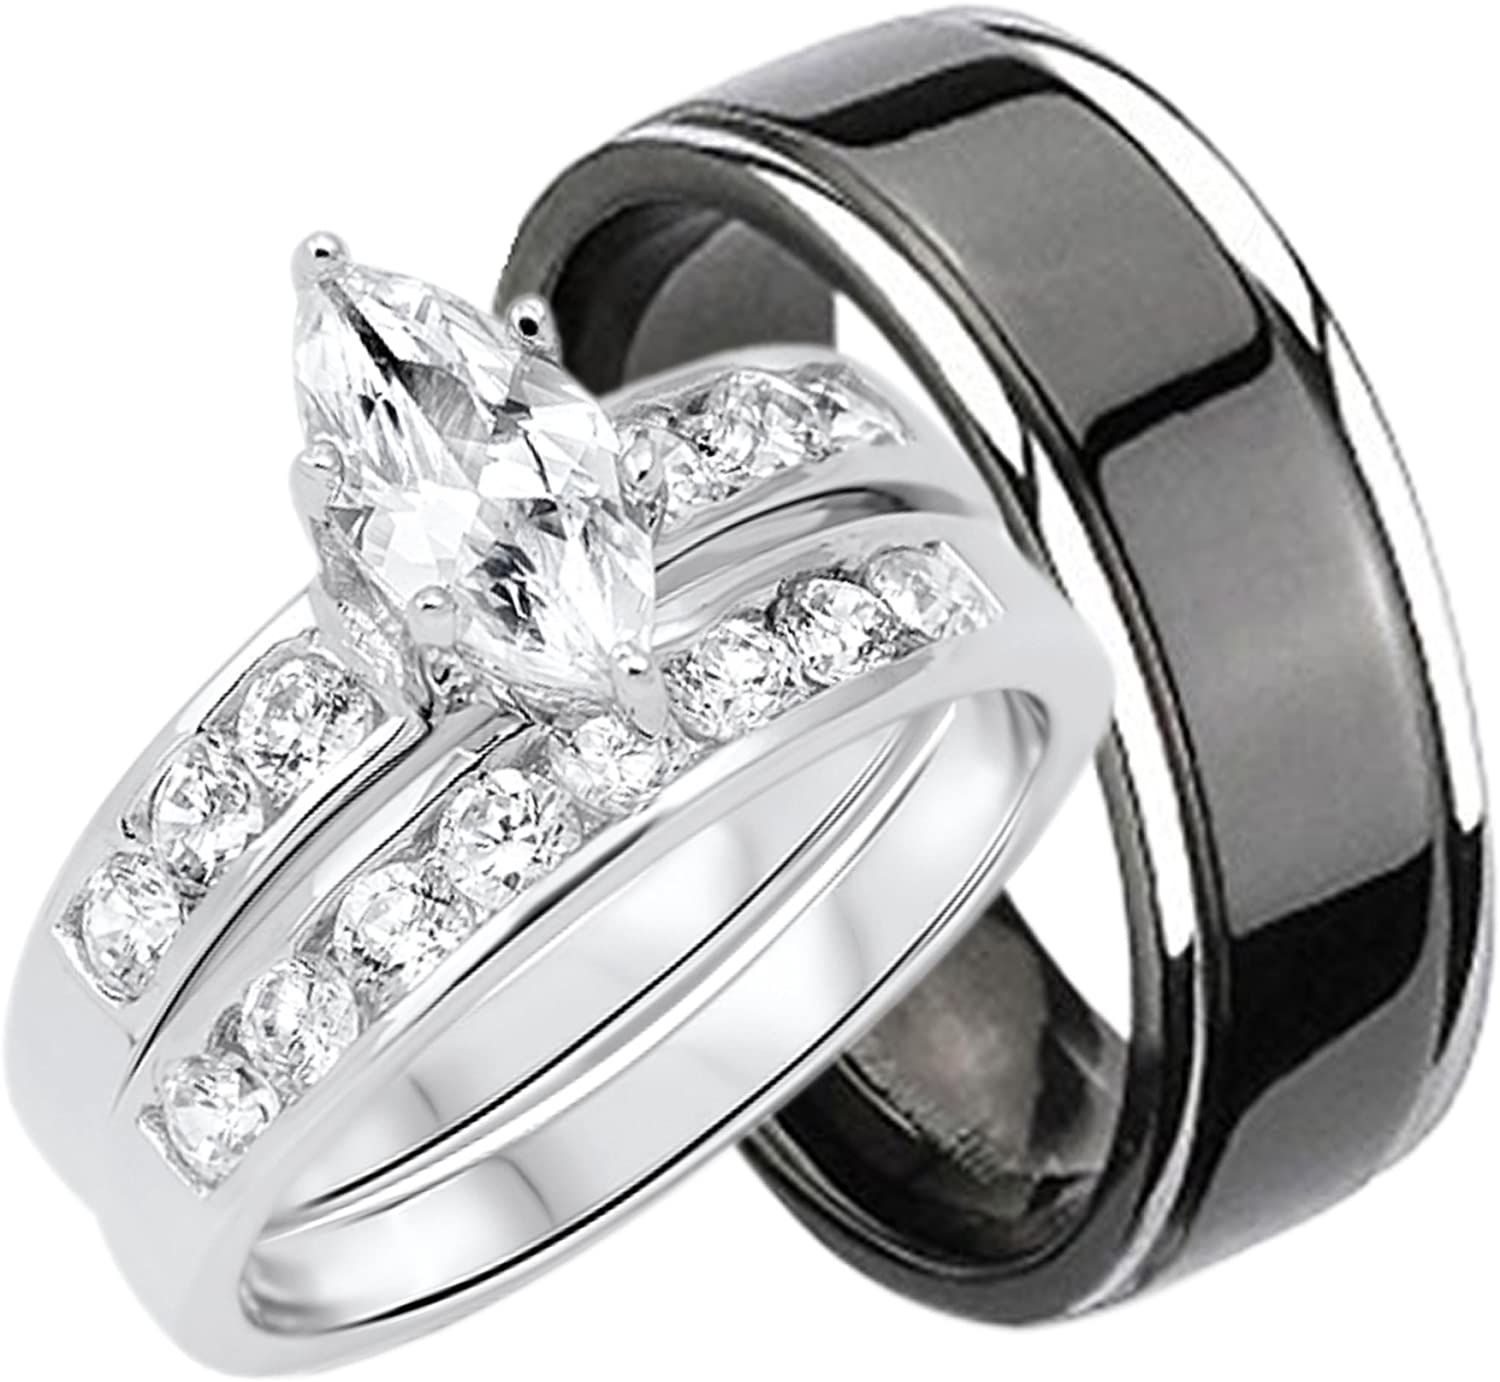 This is a photo of His and Hers Wedding Rings Set Sterling Silver Titanium Matching Bands for Him and Her